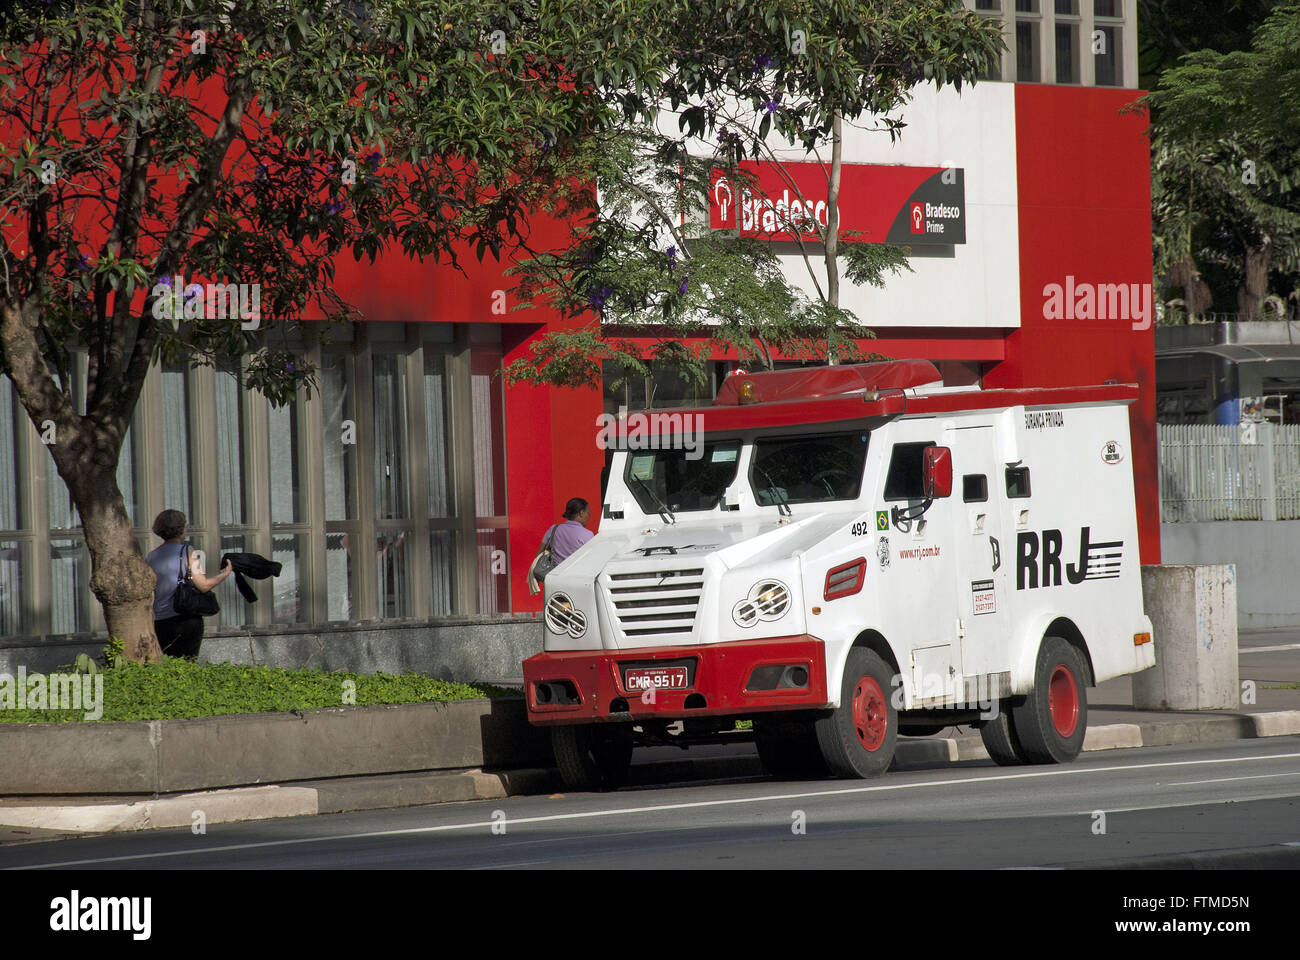 Armored car parked in front of the bank agency Avenida Paulista - Stock Image